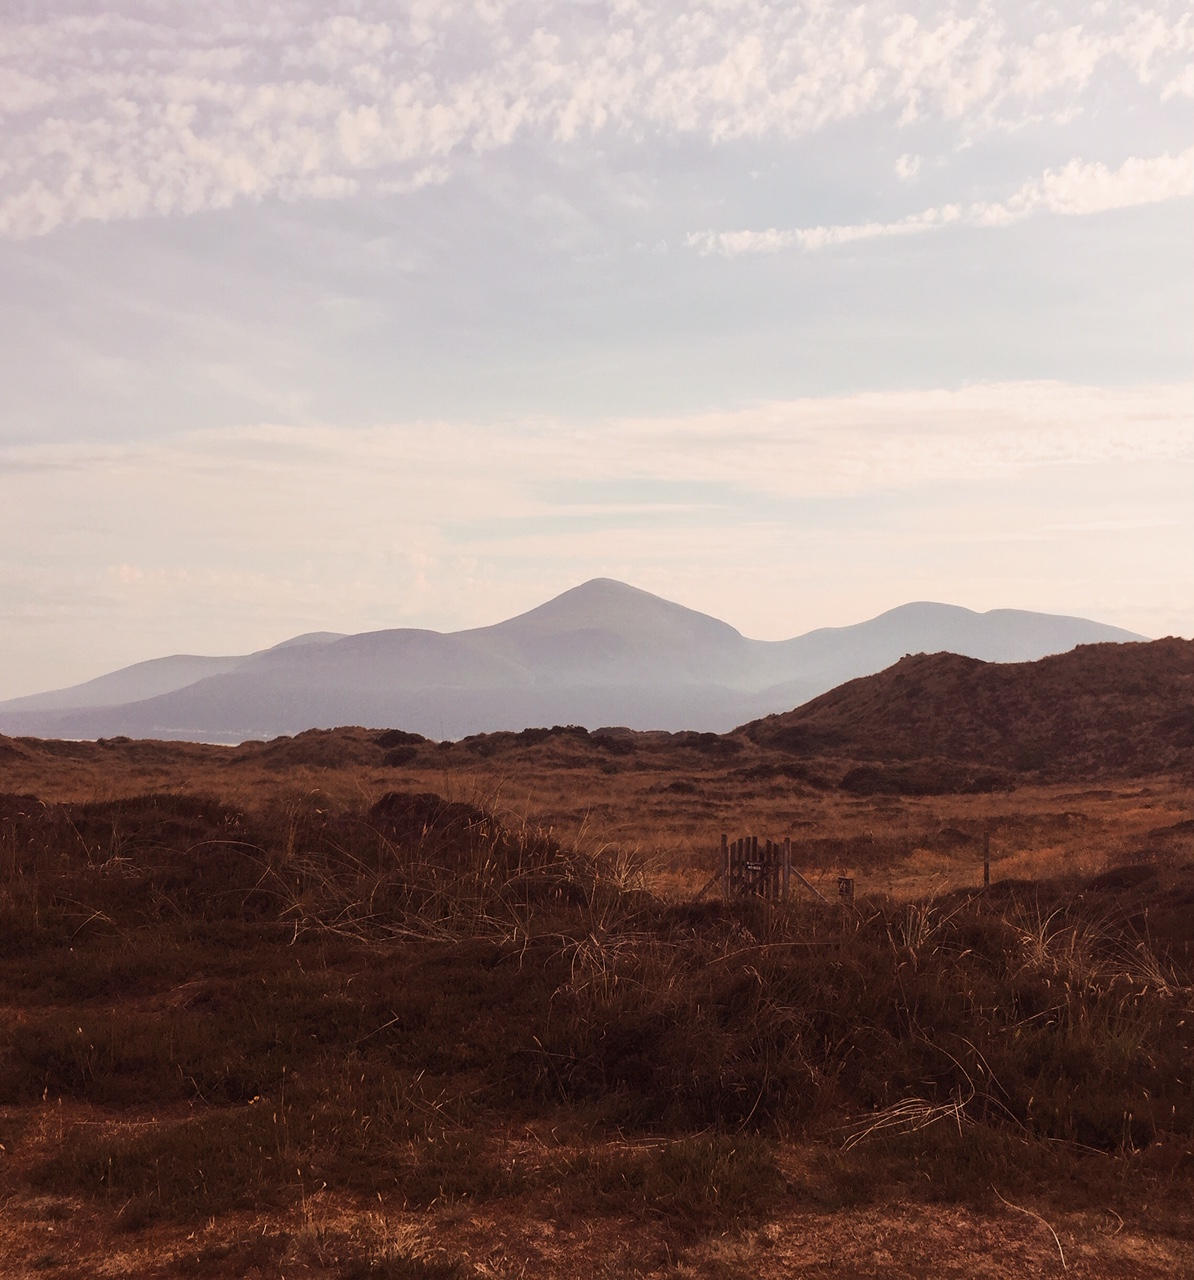 Client: Mountaineering Ireland and Newry, Mourne and Down Council.